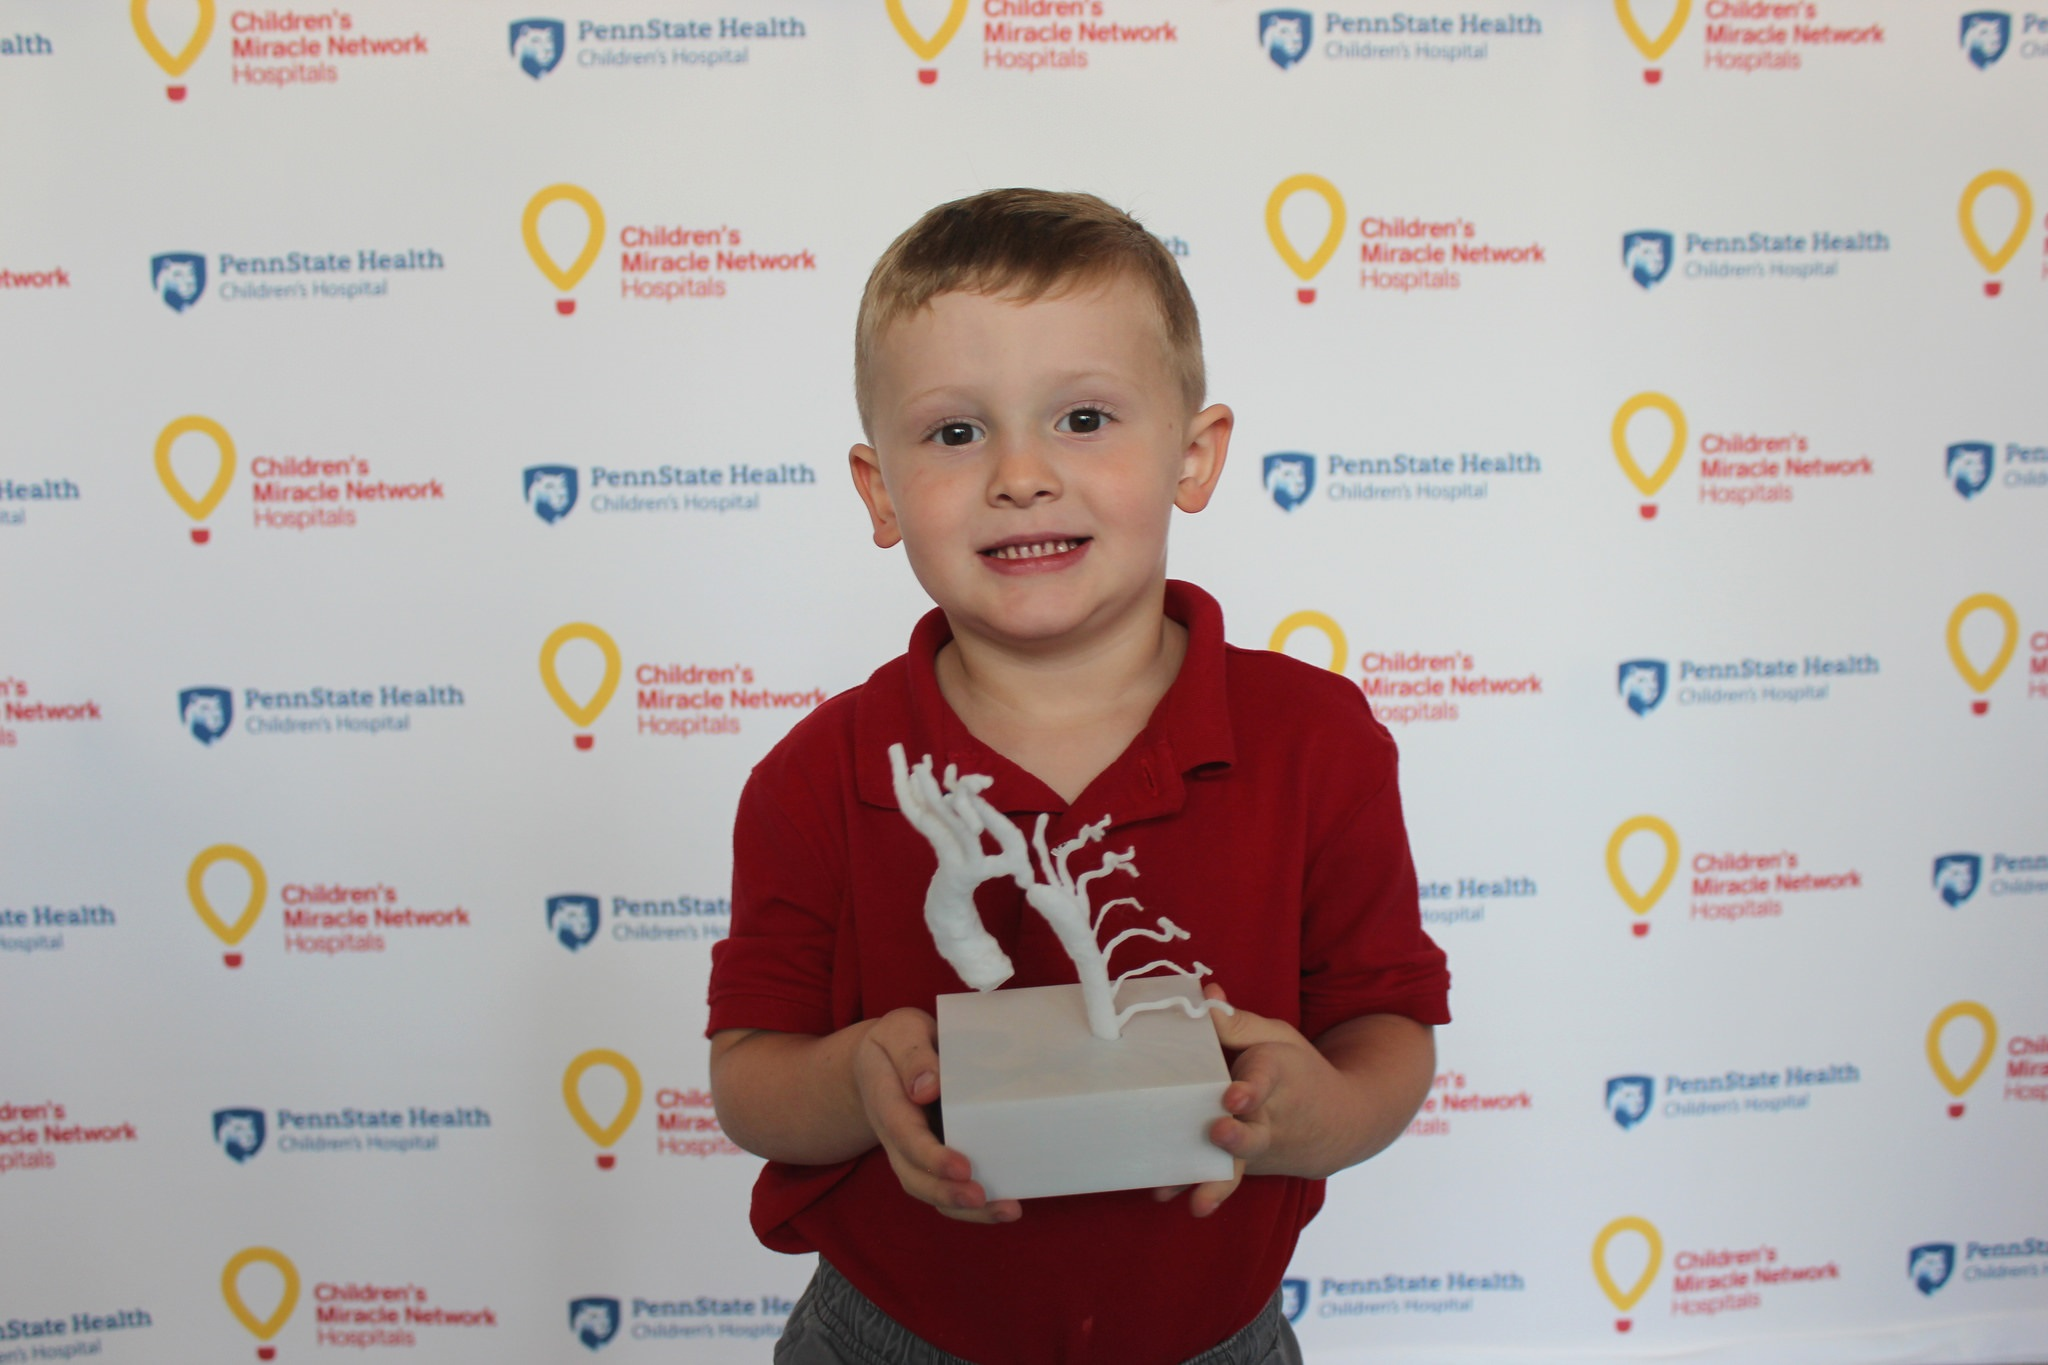 Henry Thomas, age 3, of Boiling Springs holds a 3D printed model of his own heart. He stands in front of a background with Penn State Health Children's Hospital and Children's Miracle Network Hospitals logos. He is wearing a polo shirt and pants. The model of his heart is on a white plastic block and resembles a gnarled tree.